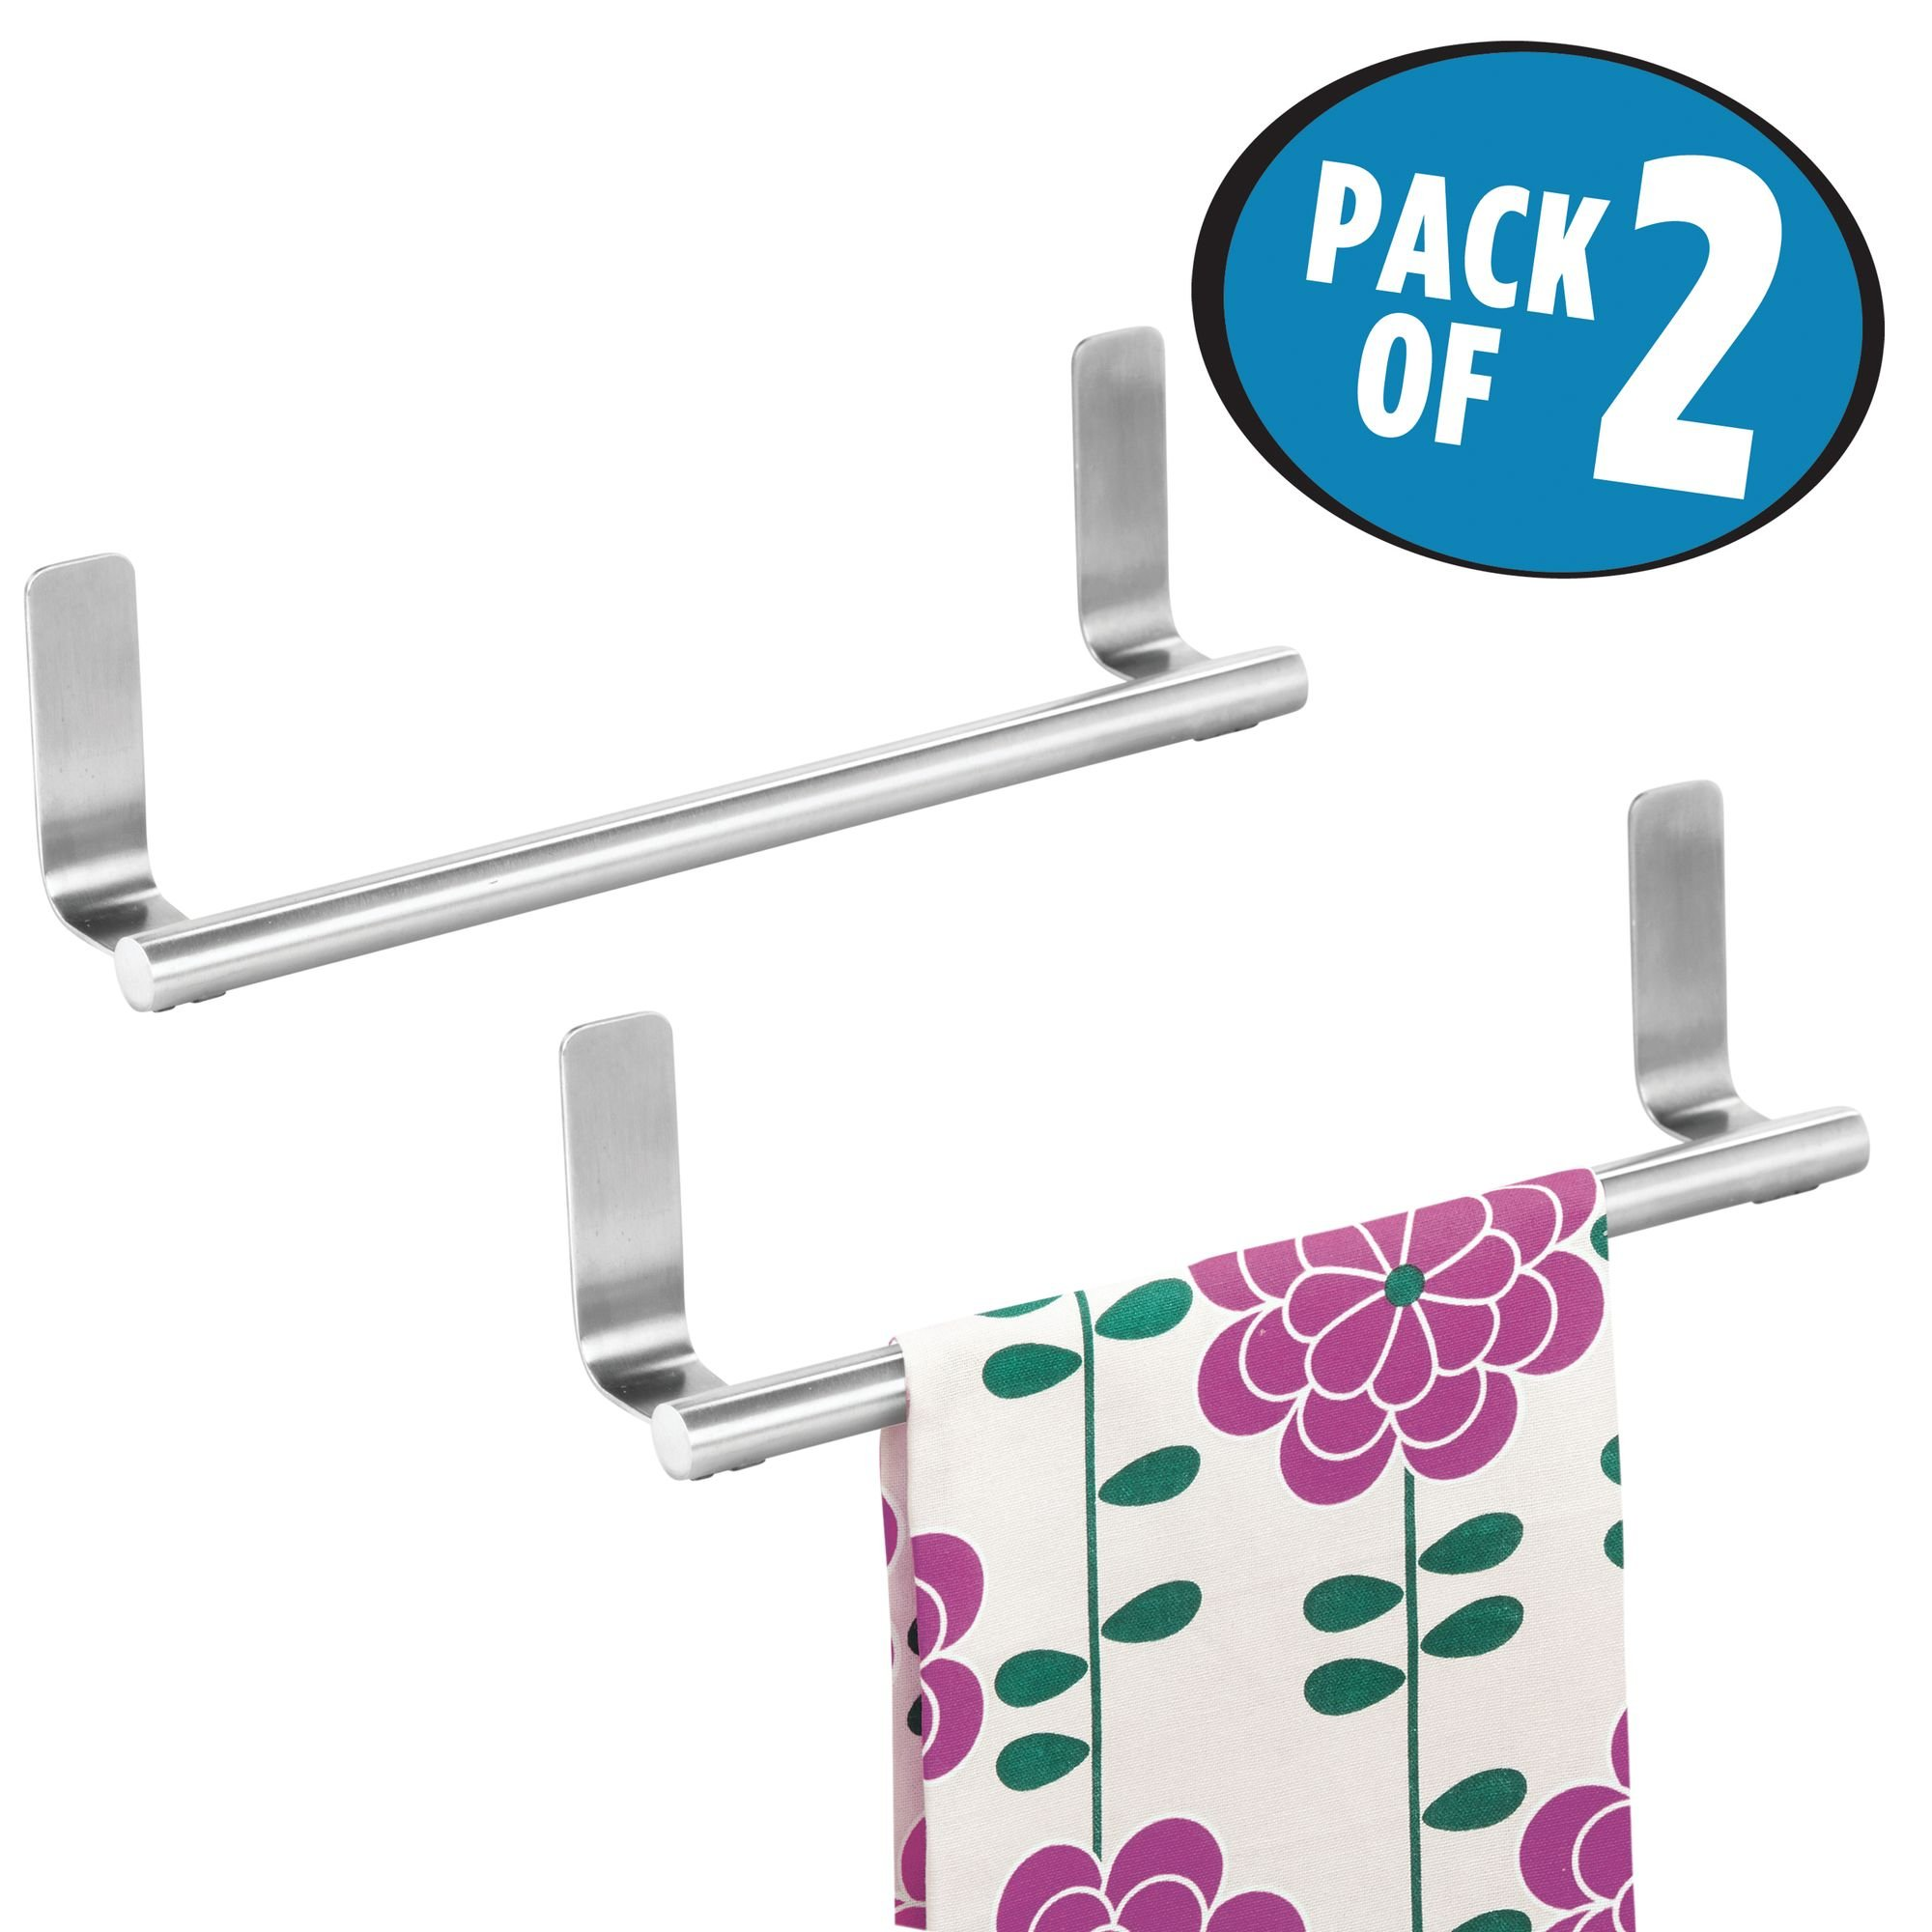 mDesign Self-Adhesive Towel Bar Holder for Bathroom or Kitchen - Pack of 2, Stainless Steel